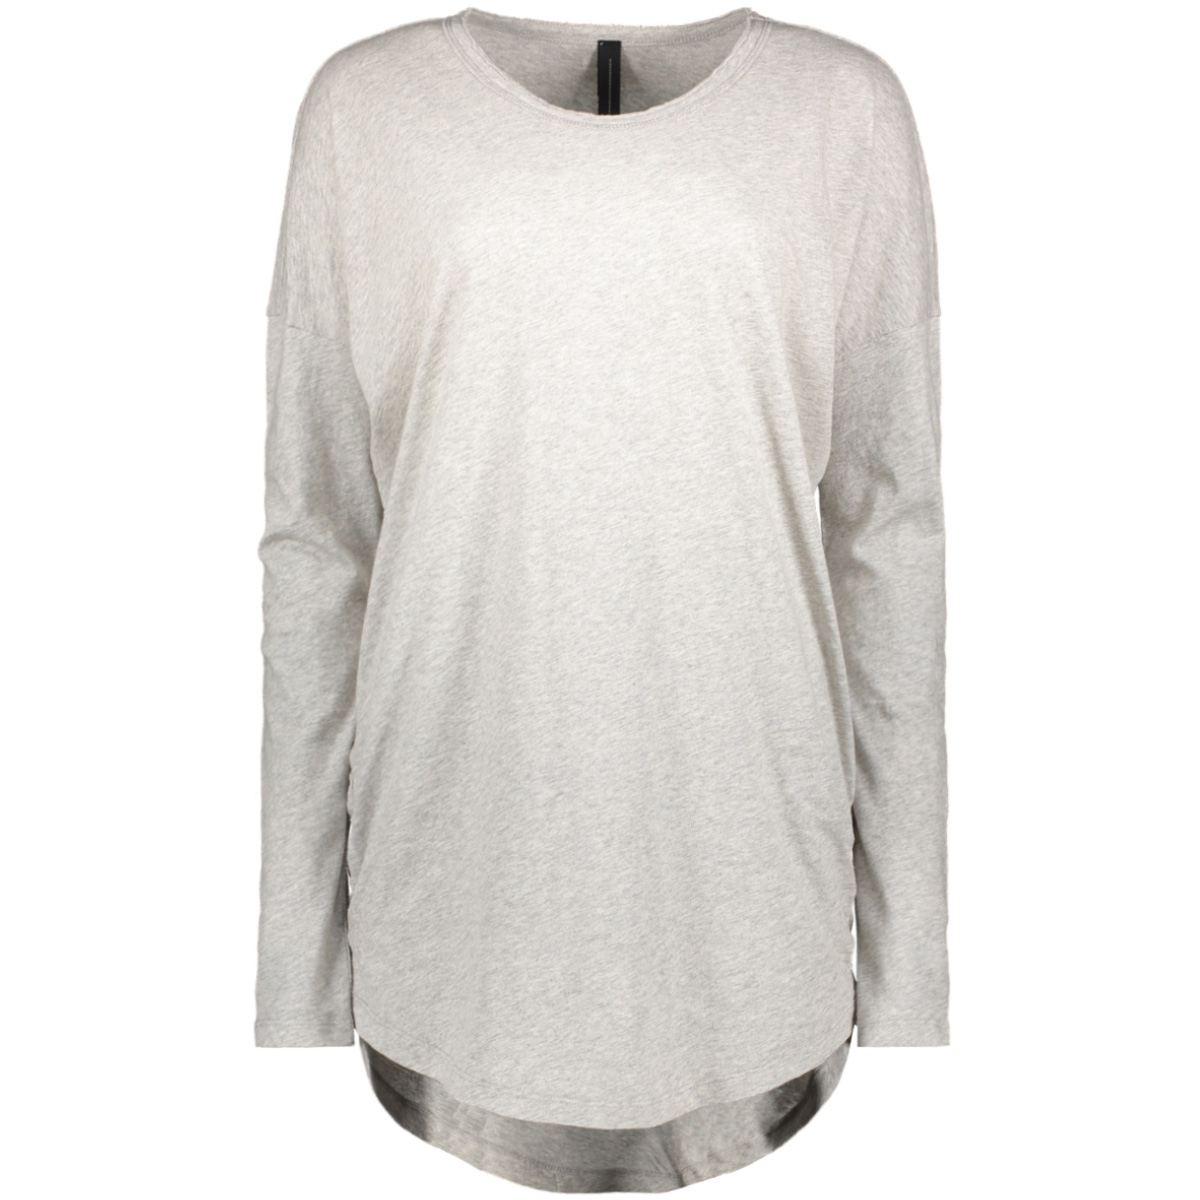 loose fit long tee 20 782 9103 10 days t-shirt light grey melee